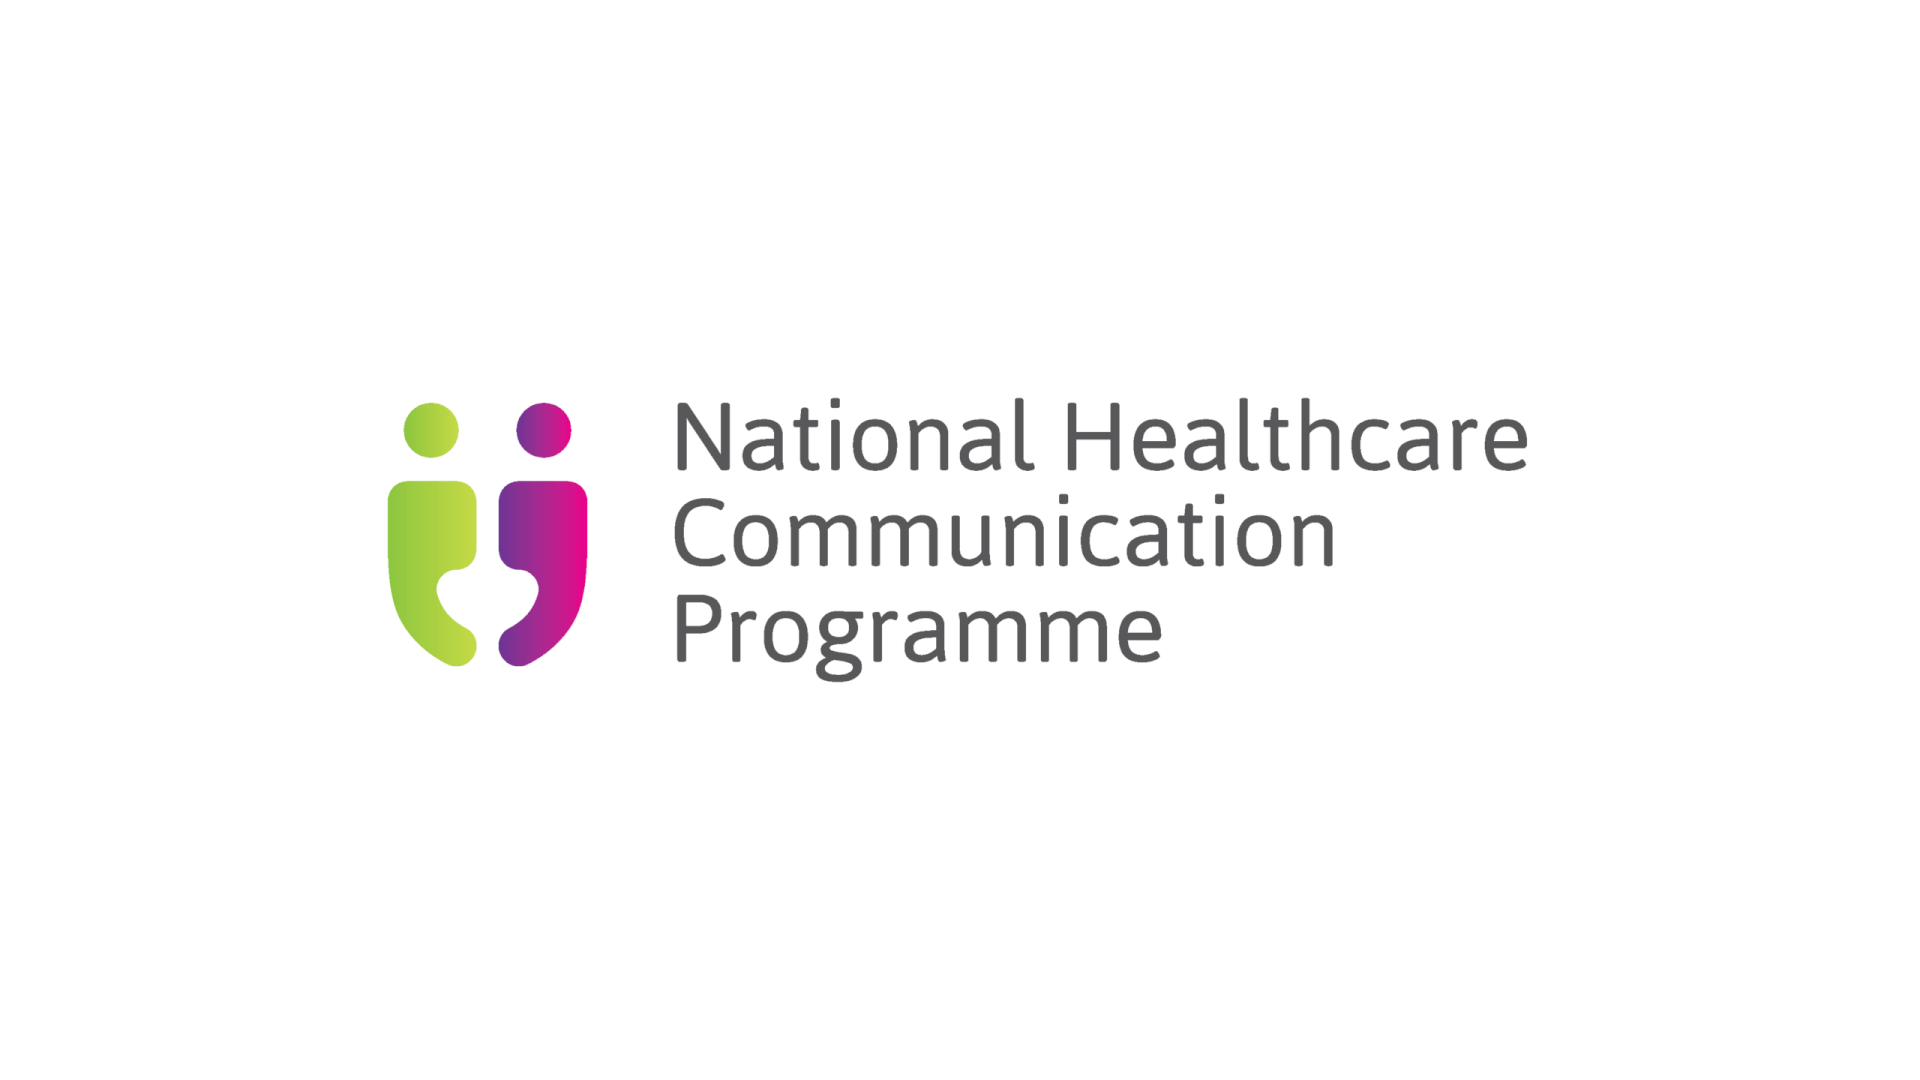 HSE national healthcare communication programme horizontal logo